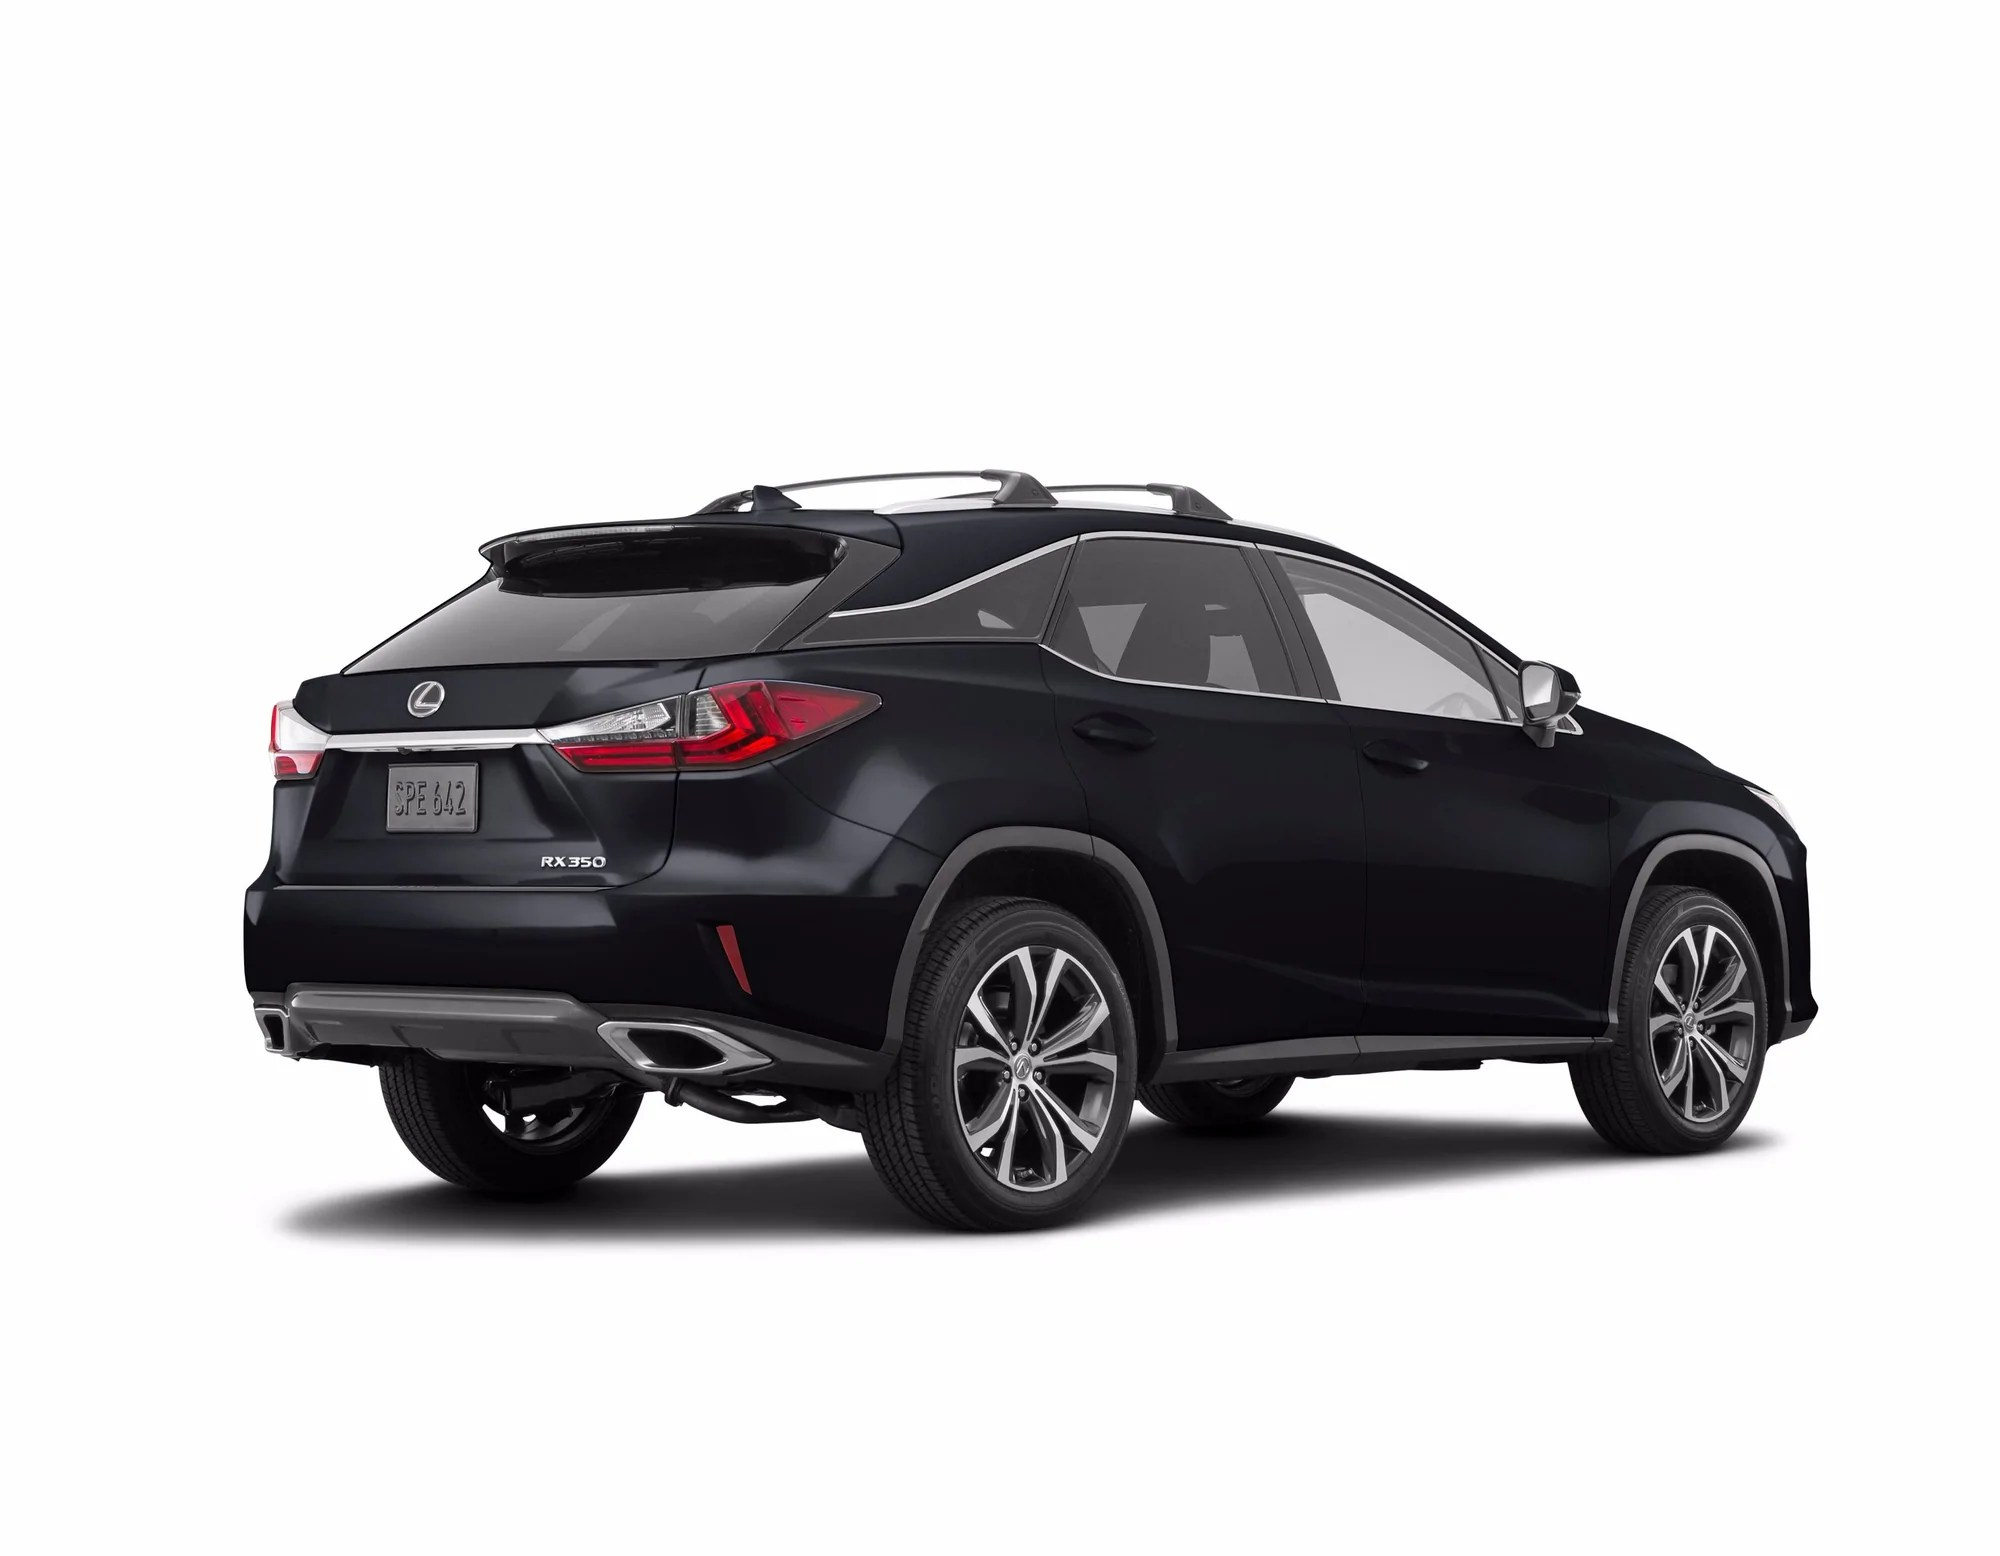 medium resolution of lexus rx 350 al10 hitch 2010 2015 stealth hitches premium lexus